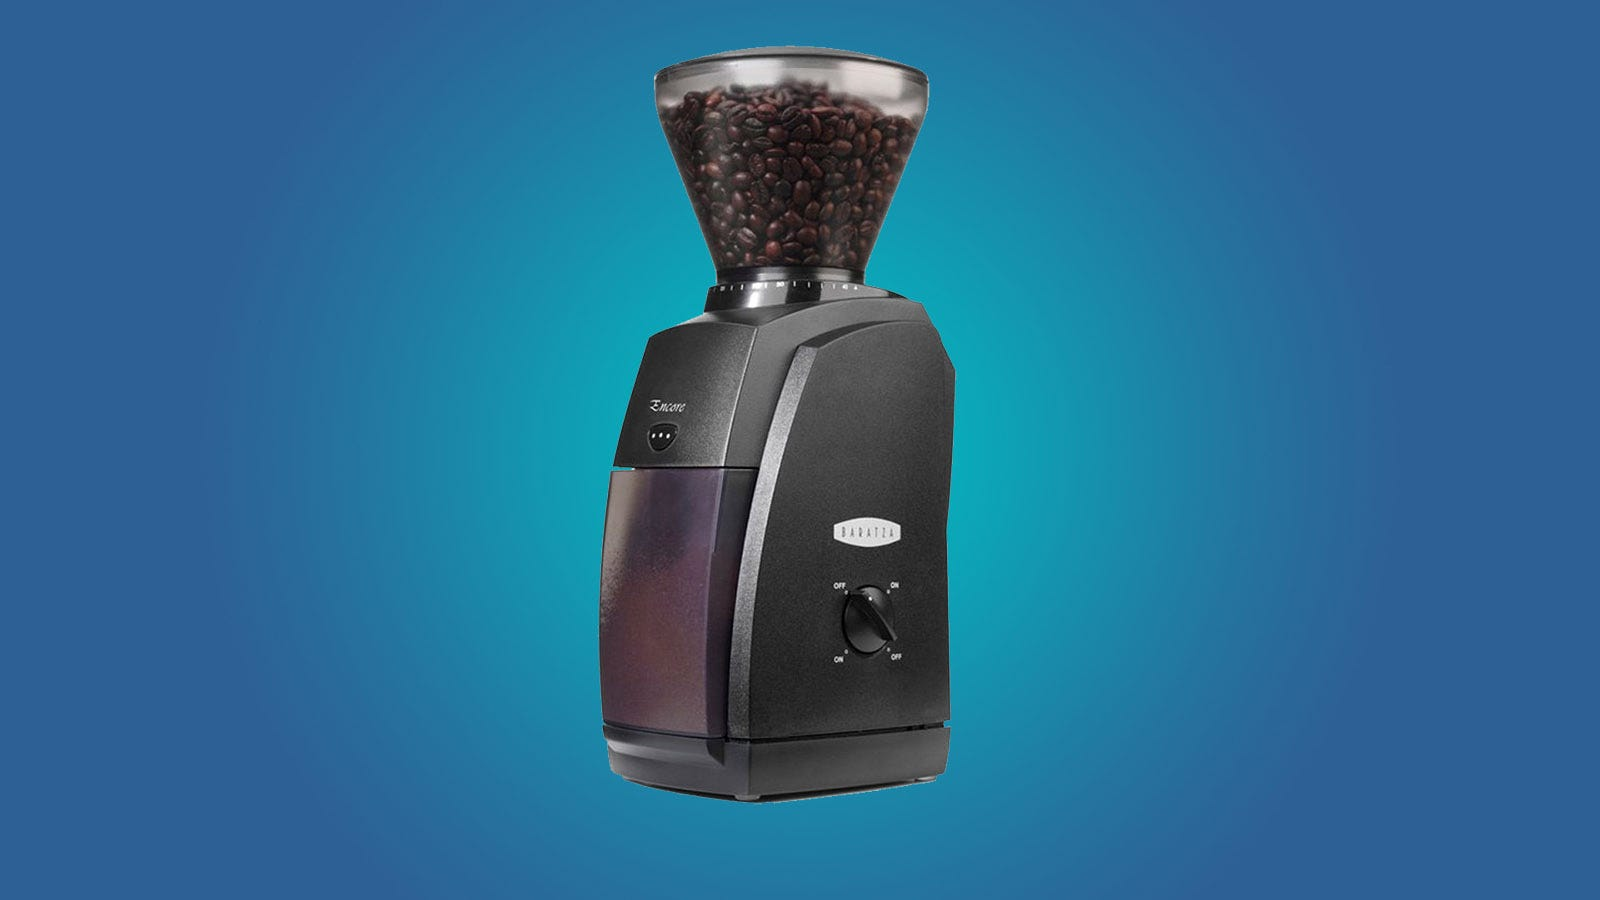 The Best Budget Burr Coffee Grinders